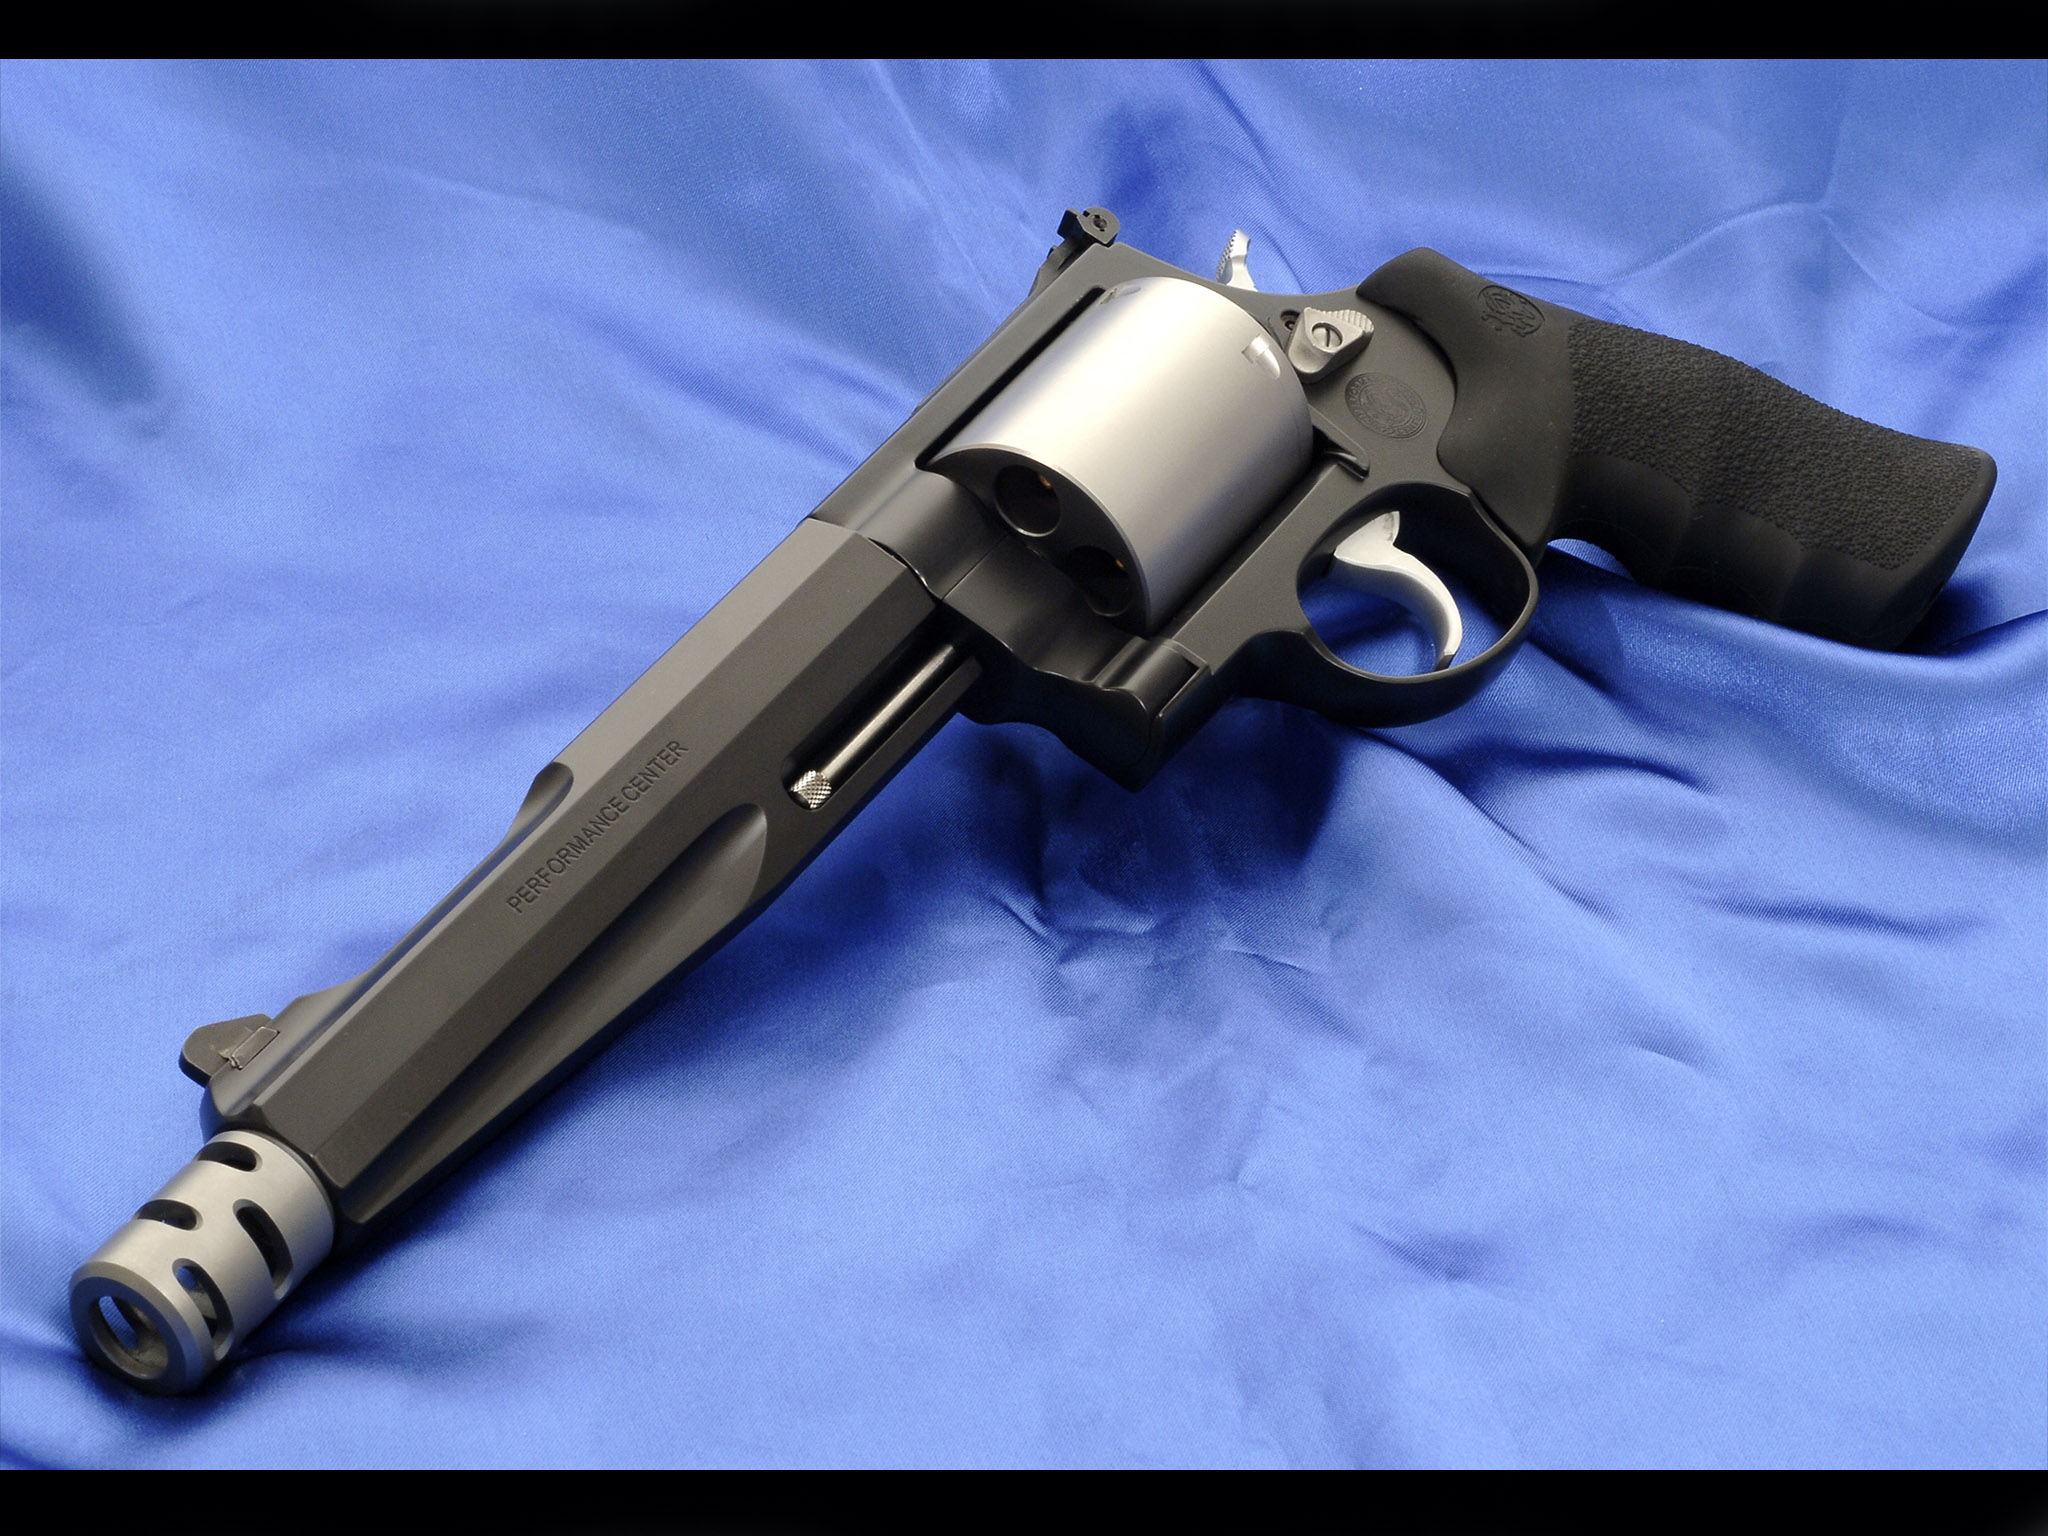 Smith Wesson Revolver Computer Wallpapers Desktop Backgrounds 2048x1536